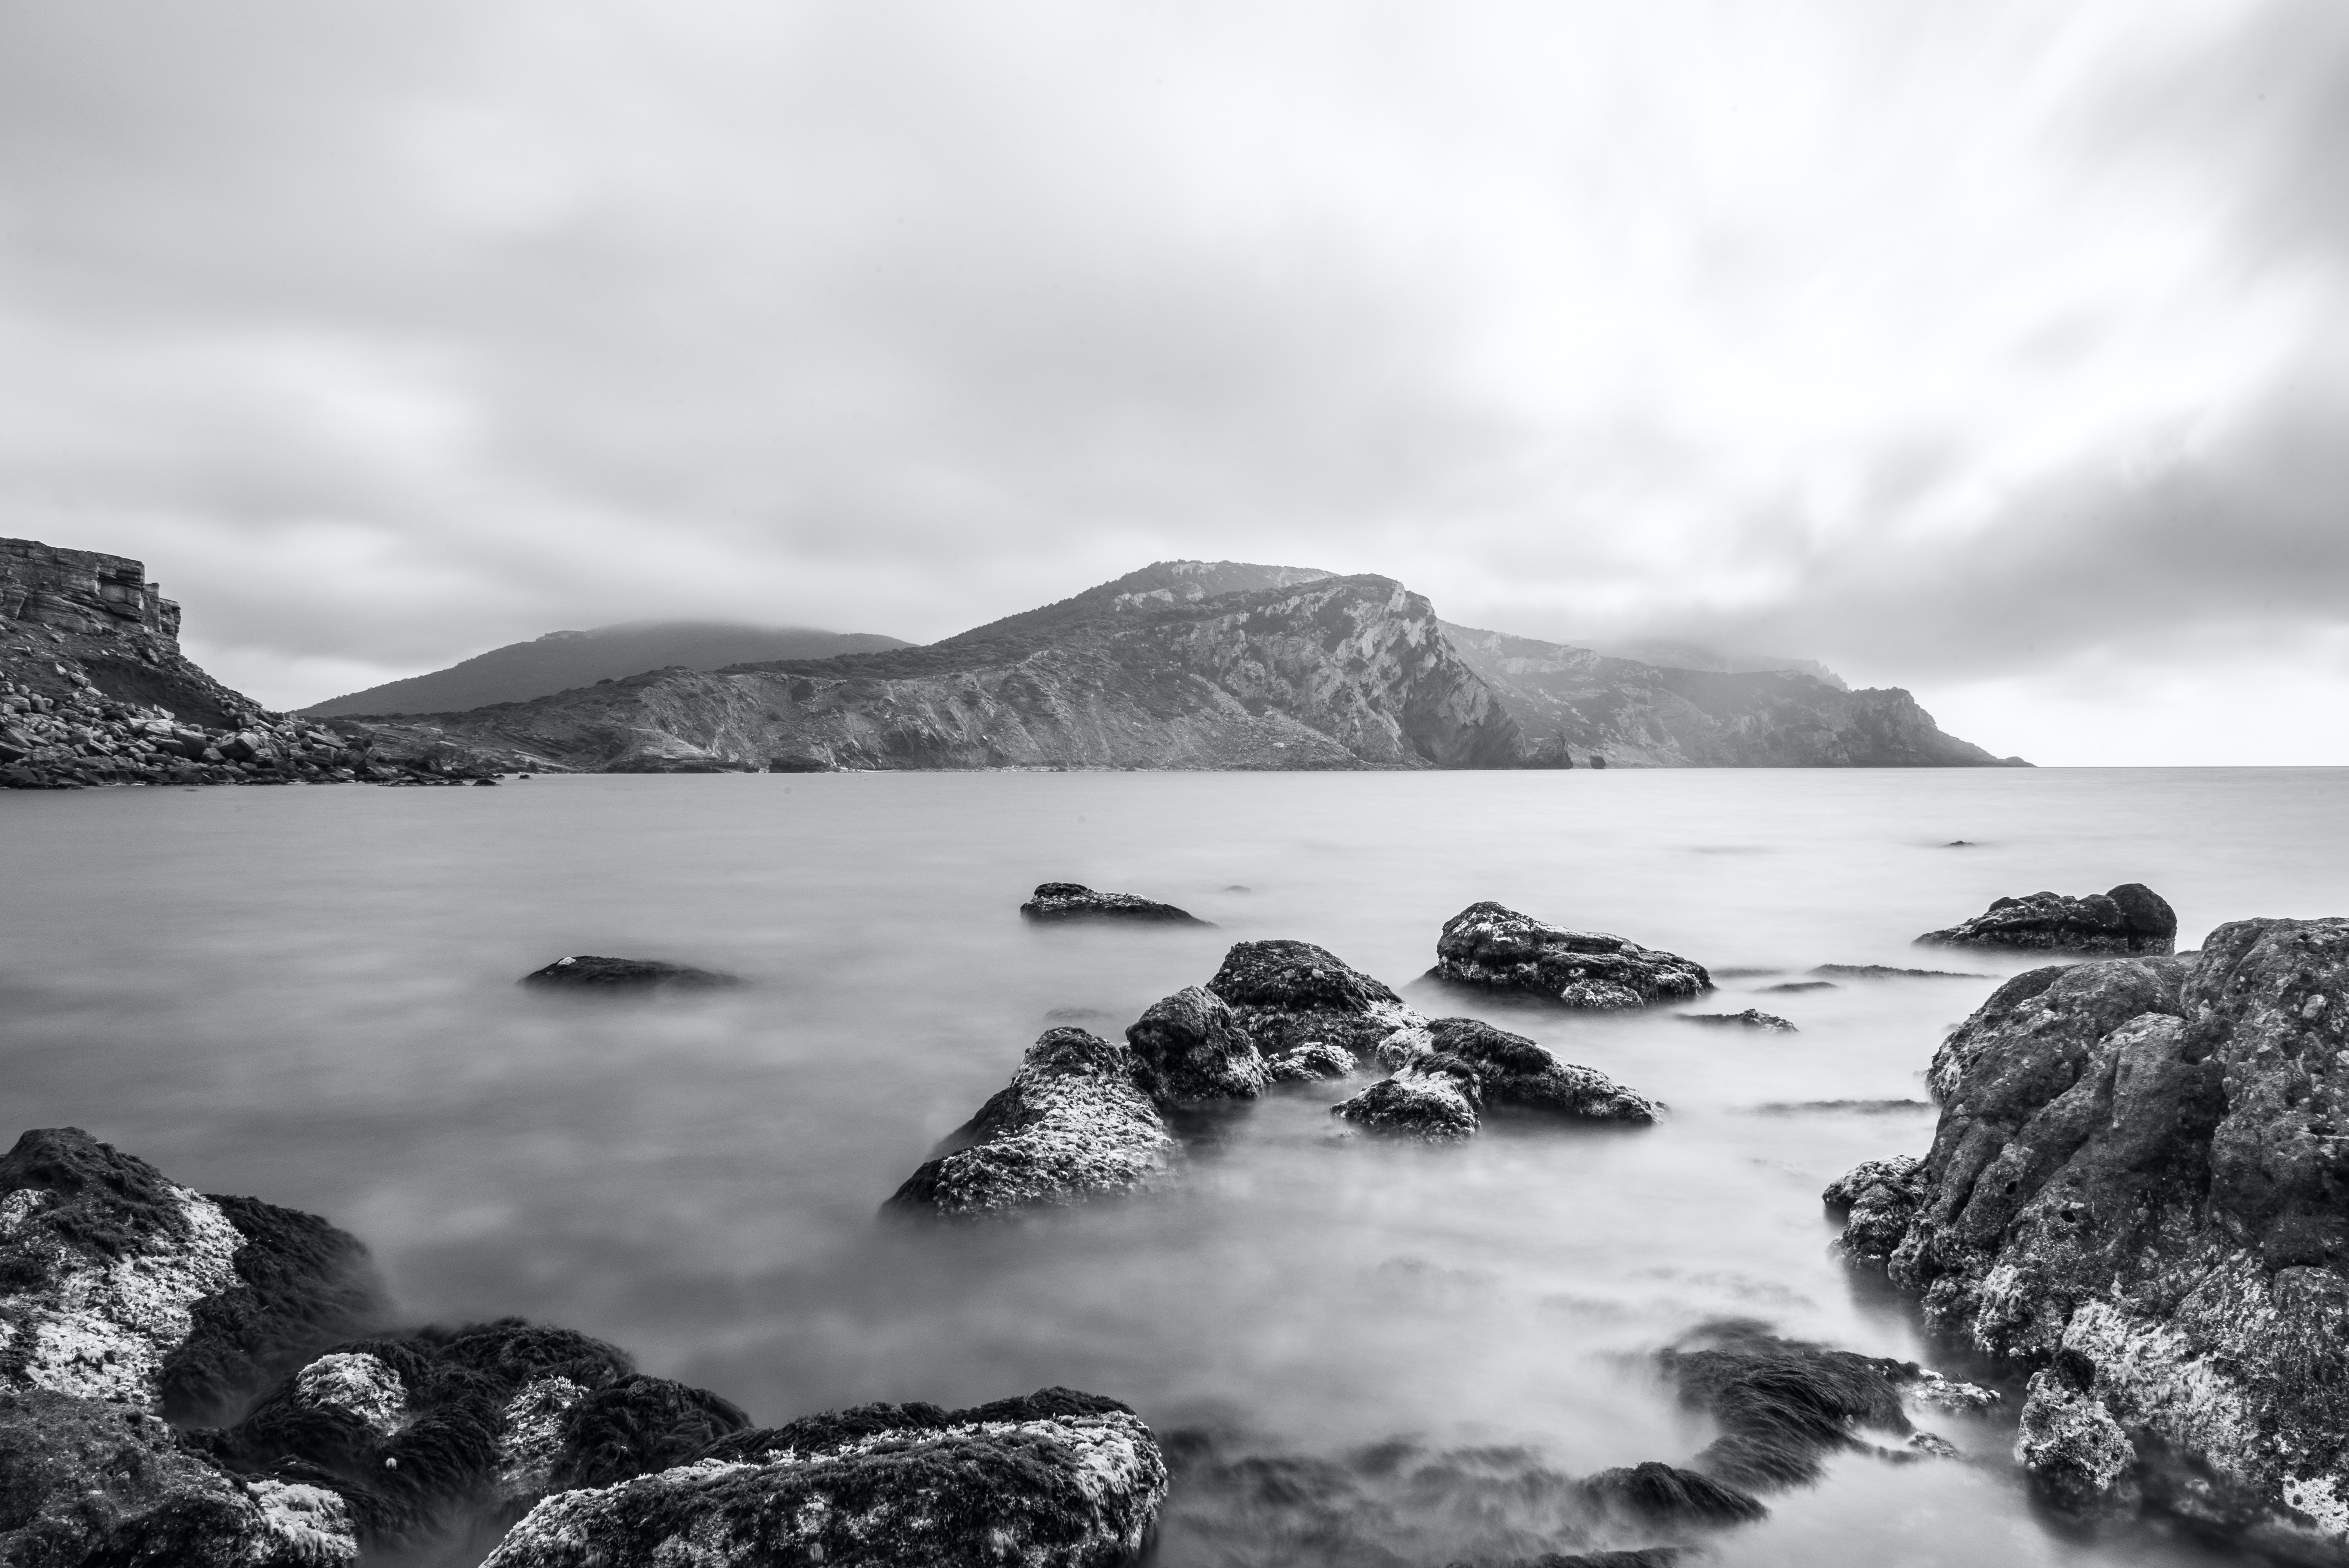 A black-and-white shot of mossy rocks jutting out from the water with rocky cliffs at the back